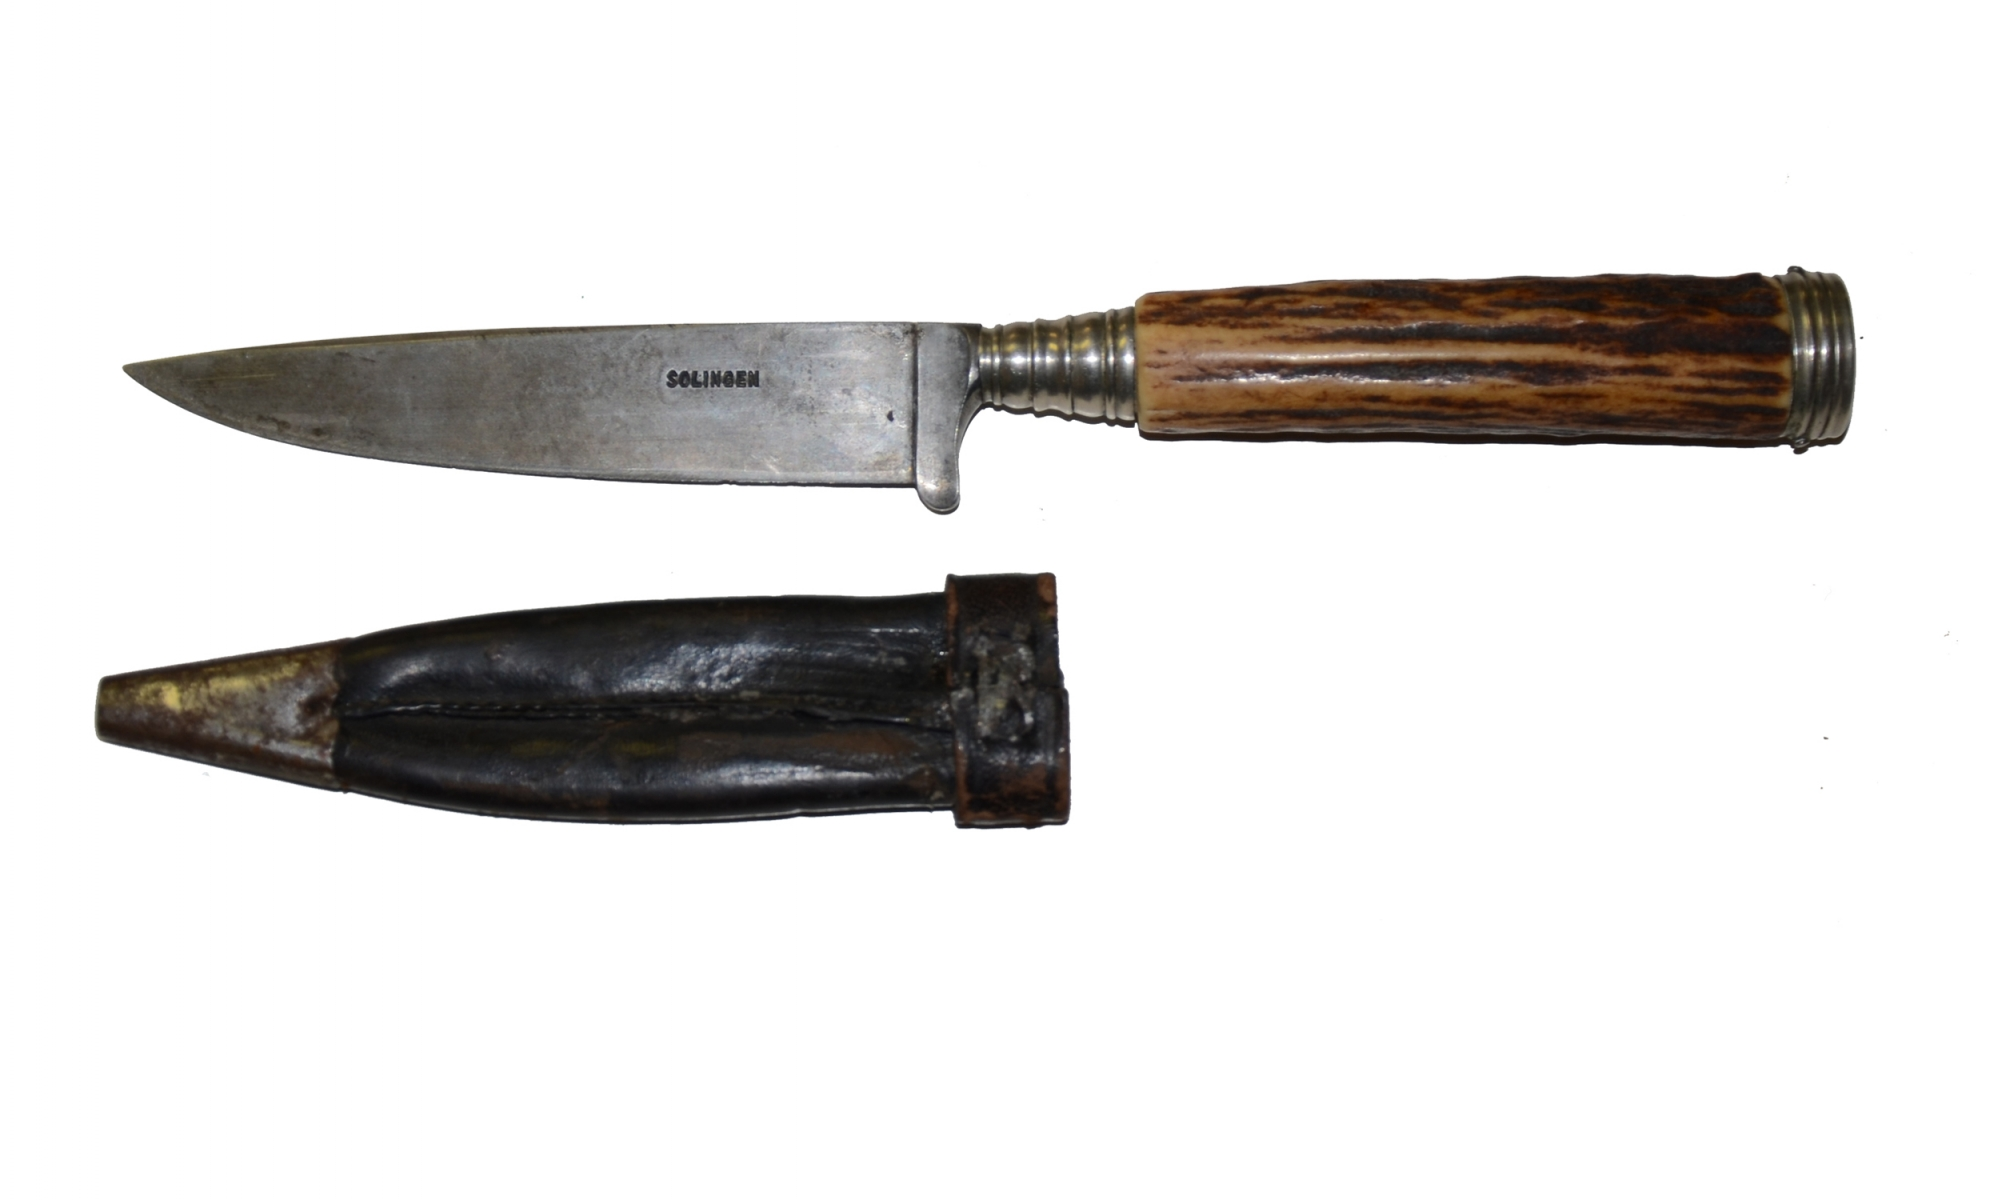 19TH CENTURY GERMAN SIDE KNIFE WITH SHEATH